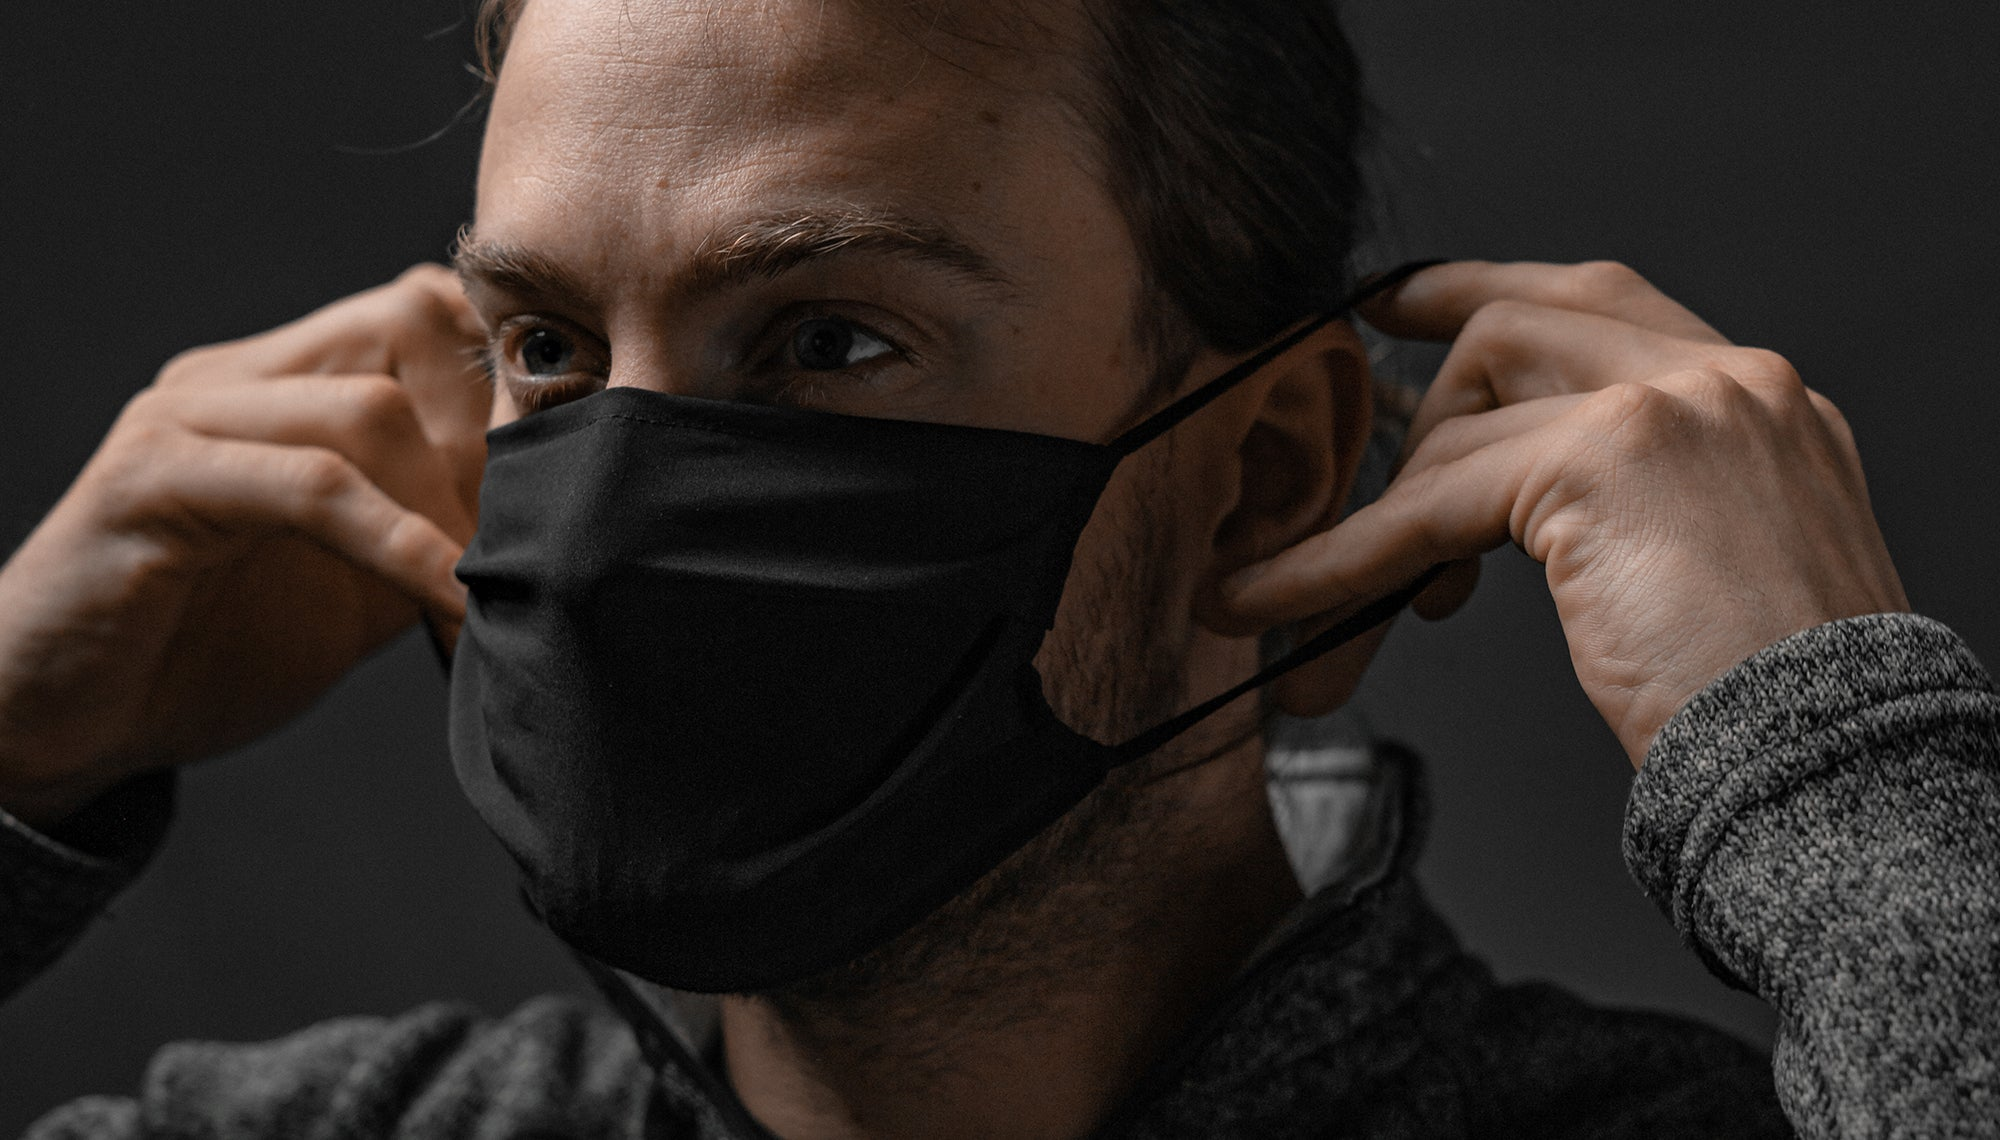 Front view of man placing facemask on face